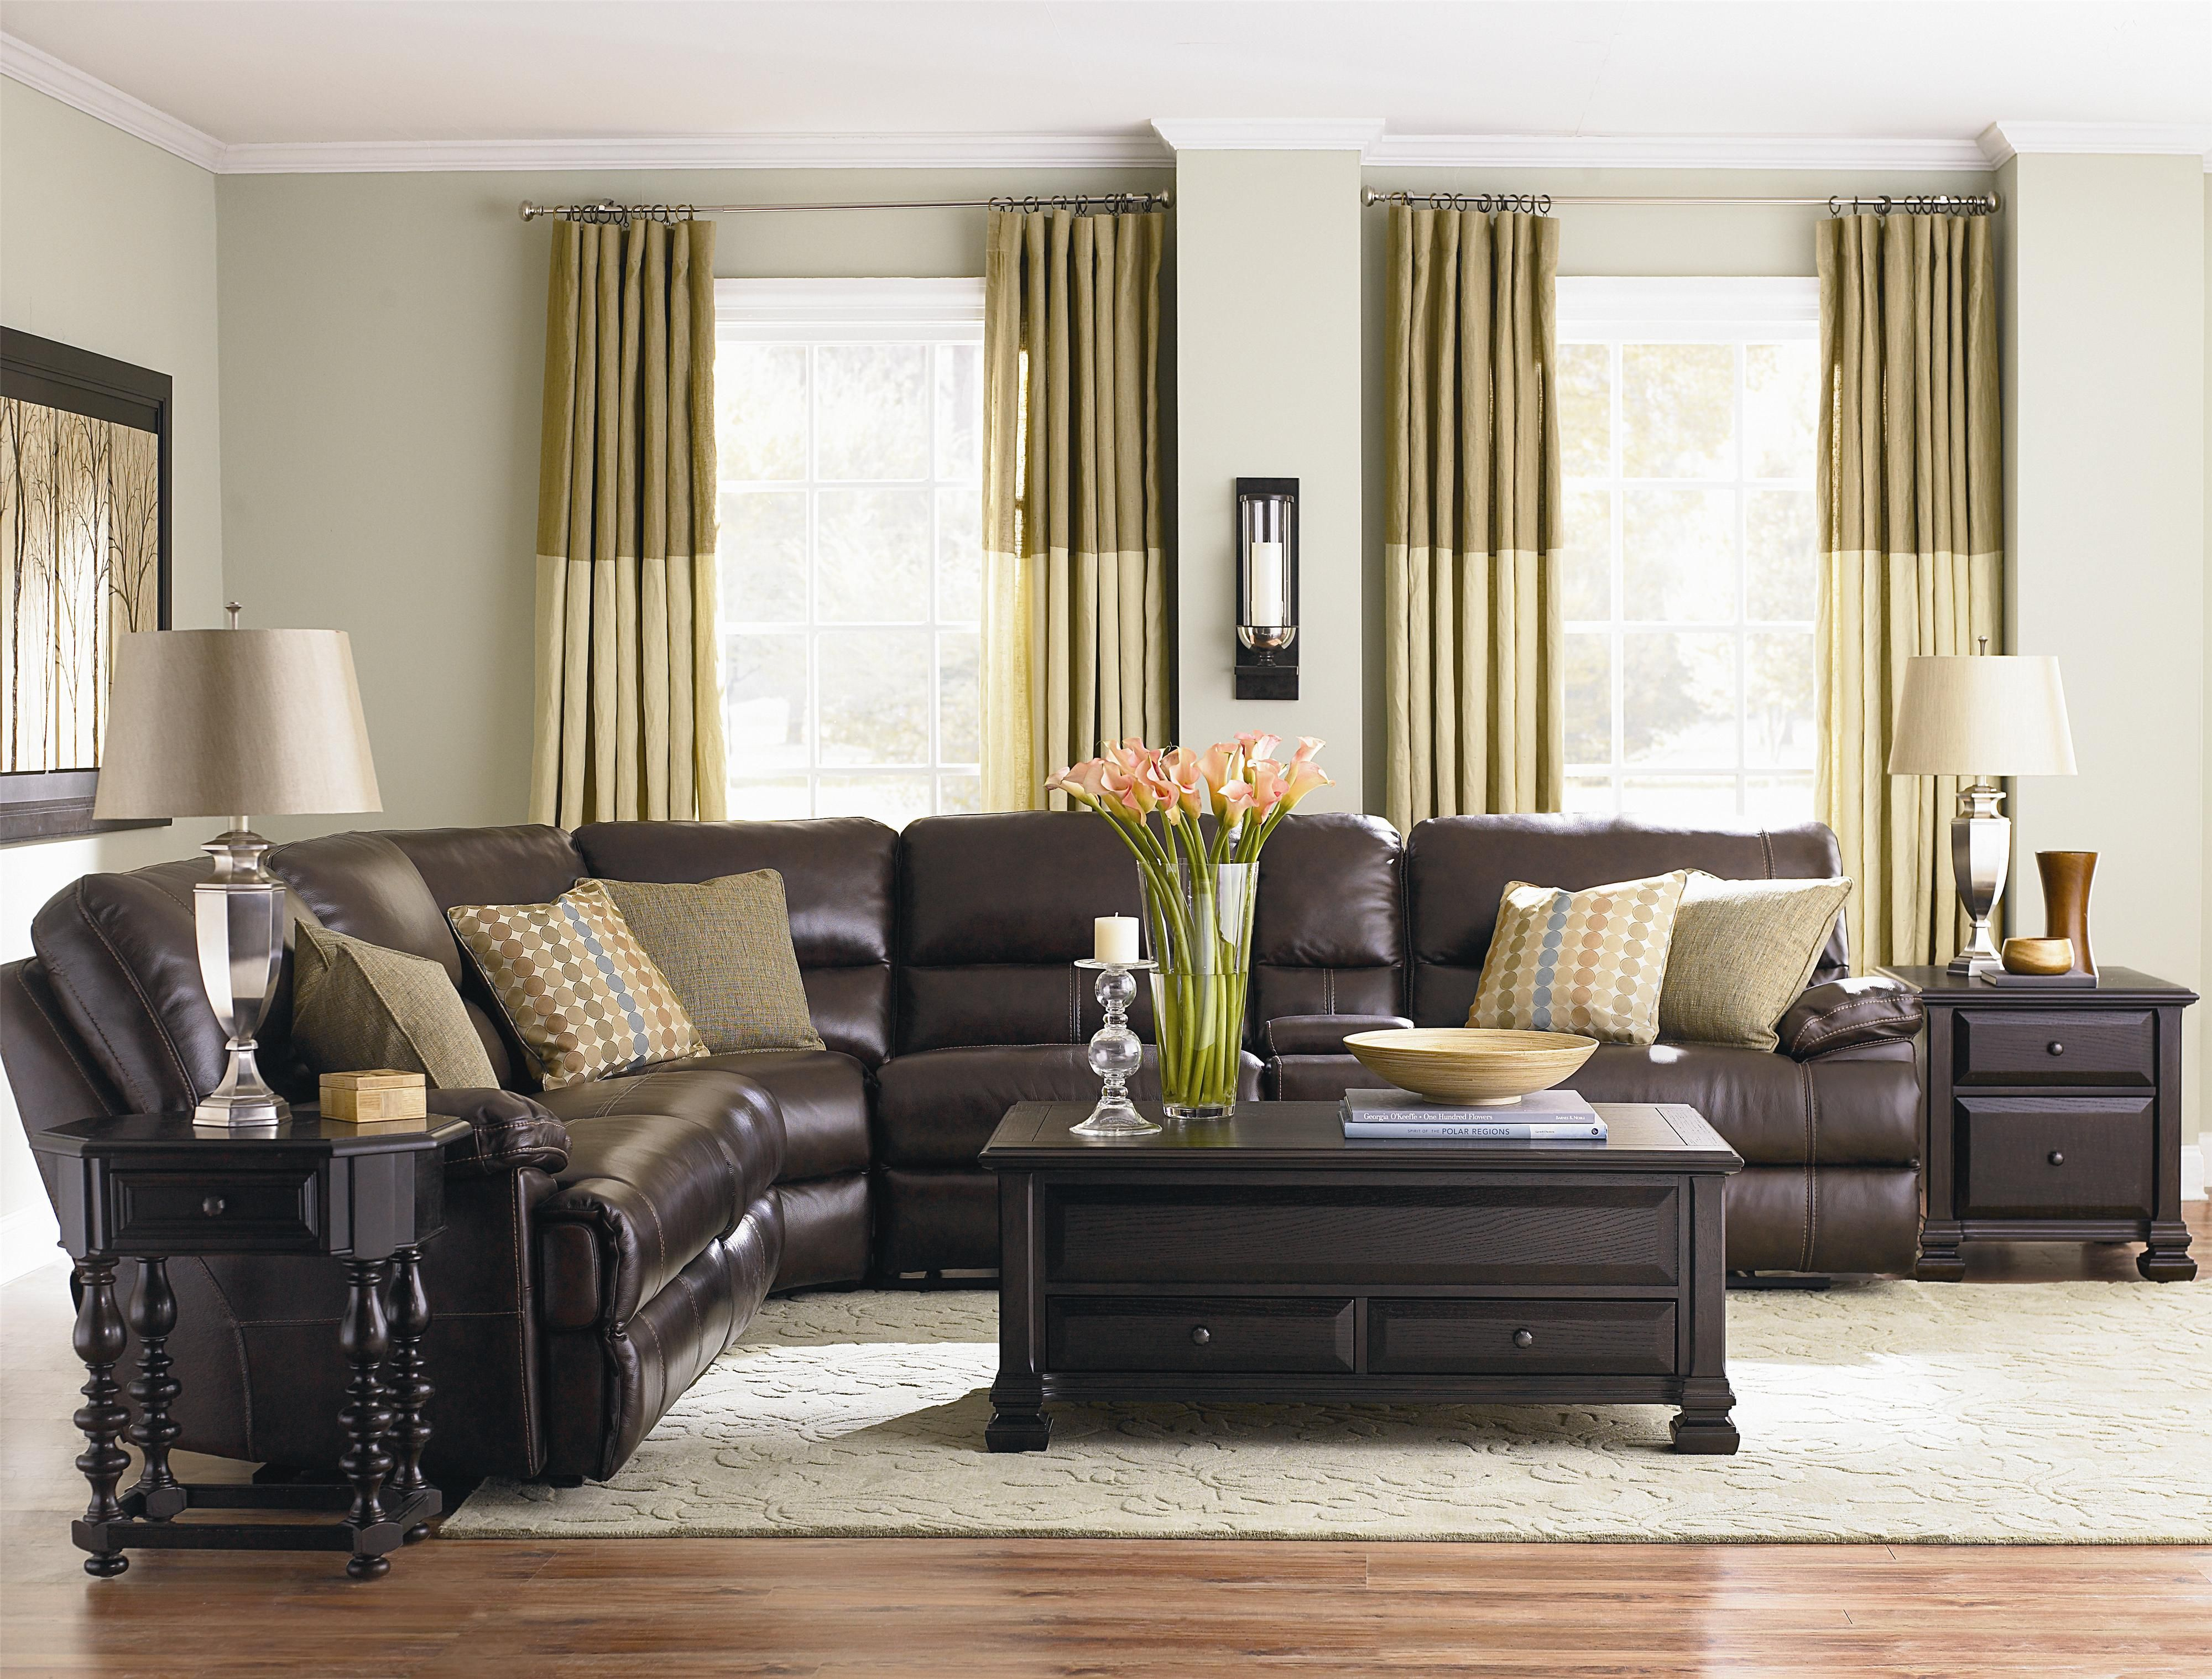 Dillon 6 Piece Sectional by Bassett : basset sectional - Sectionals, Sofas & Couches